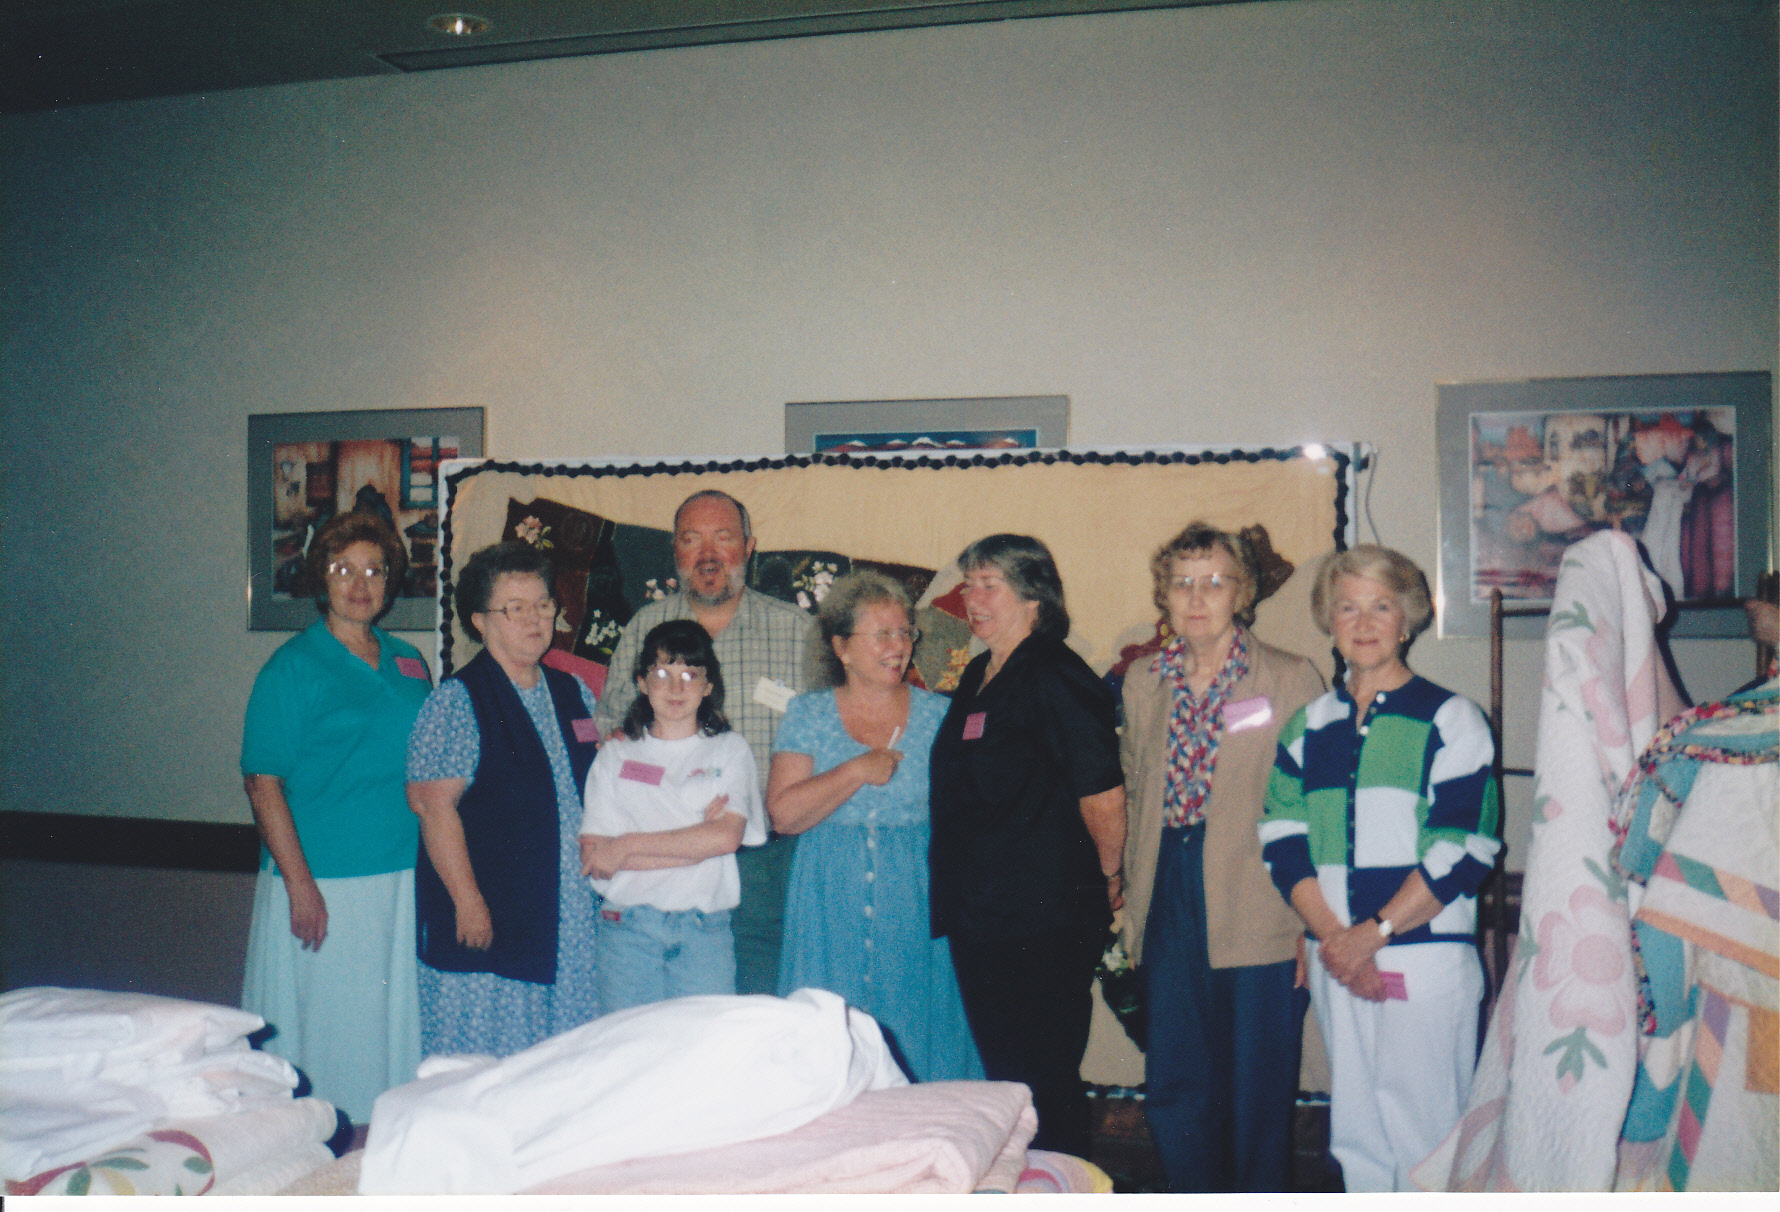 1997 OFHS meeting in Independence, MO (Descendants of Joseph Owsley and Phoebe Longmire